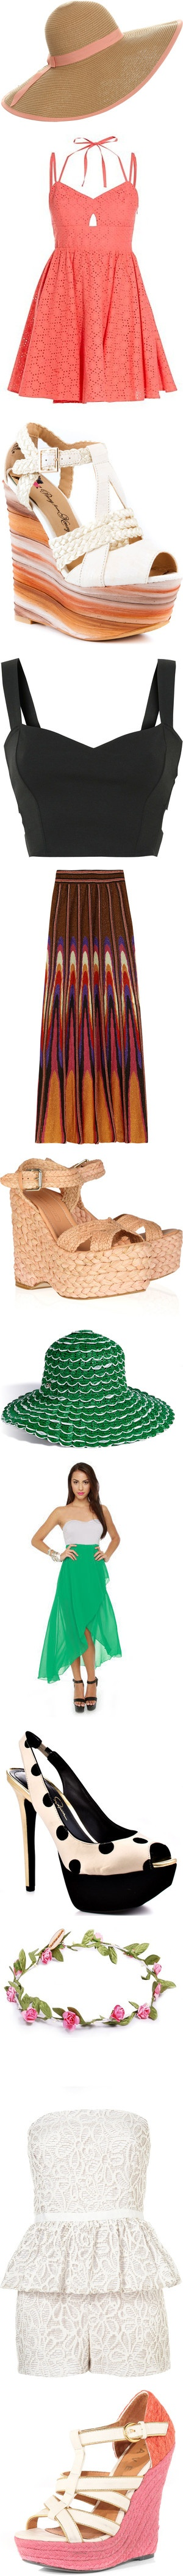 """""""Outfits to wear for Opening Day/Horse Races"""" by iheartkittys on Polyvore"""